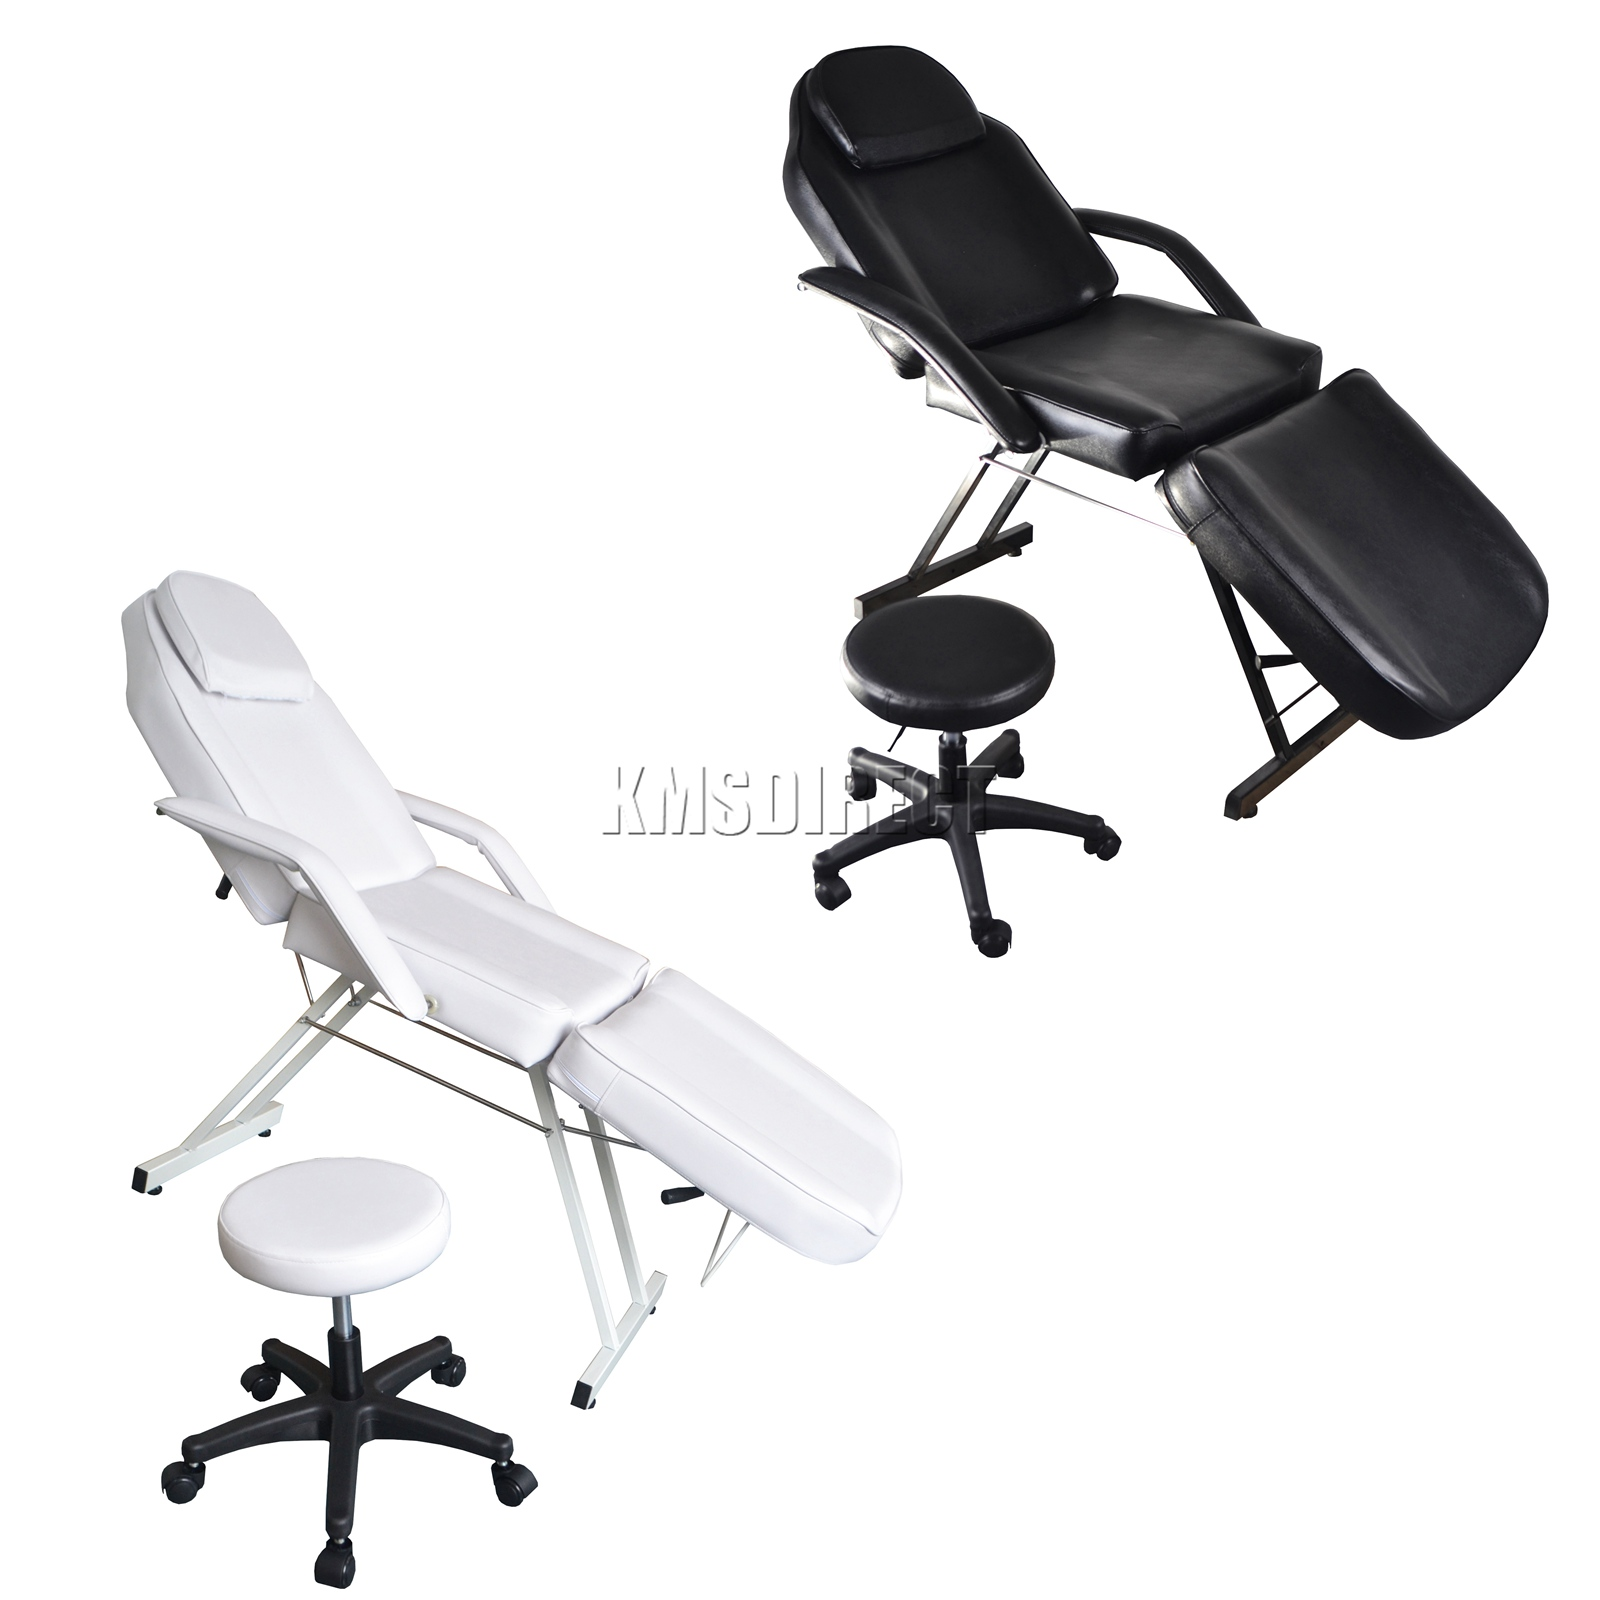 Portable Tattoo Chair Foxhunter Beauty Salon Chair Massage Table Tattoo Facial